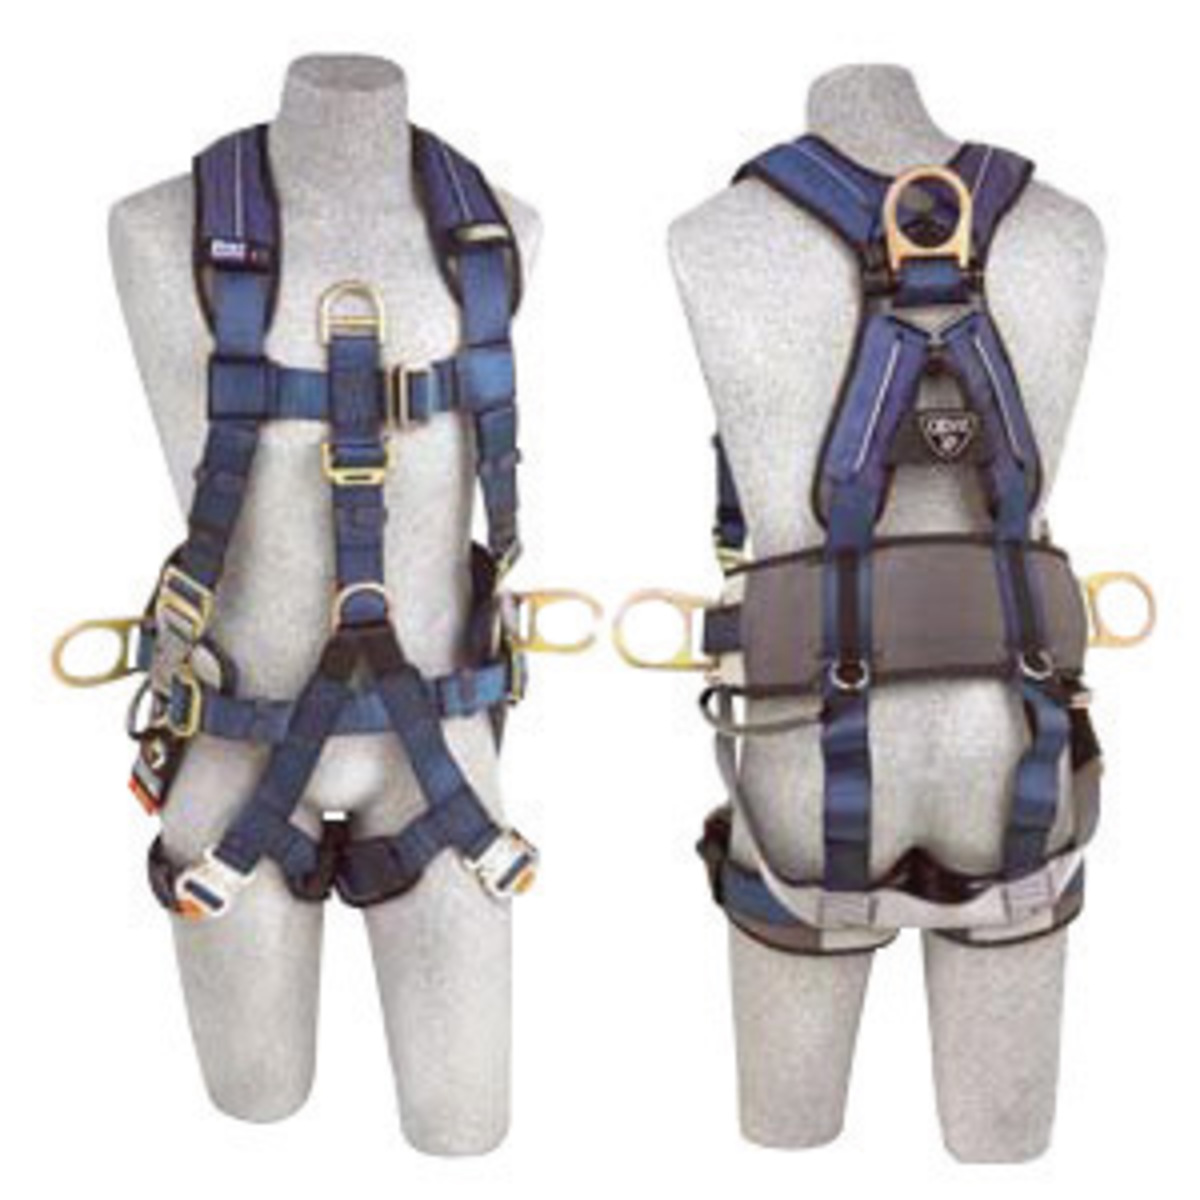 Fall Protection Harness : Airgas d dbi sala small exofit™ xp full body